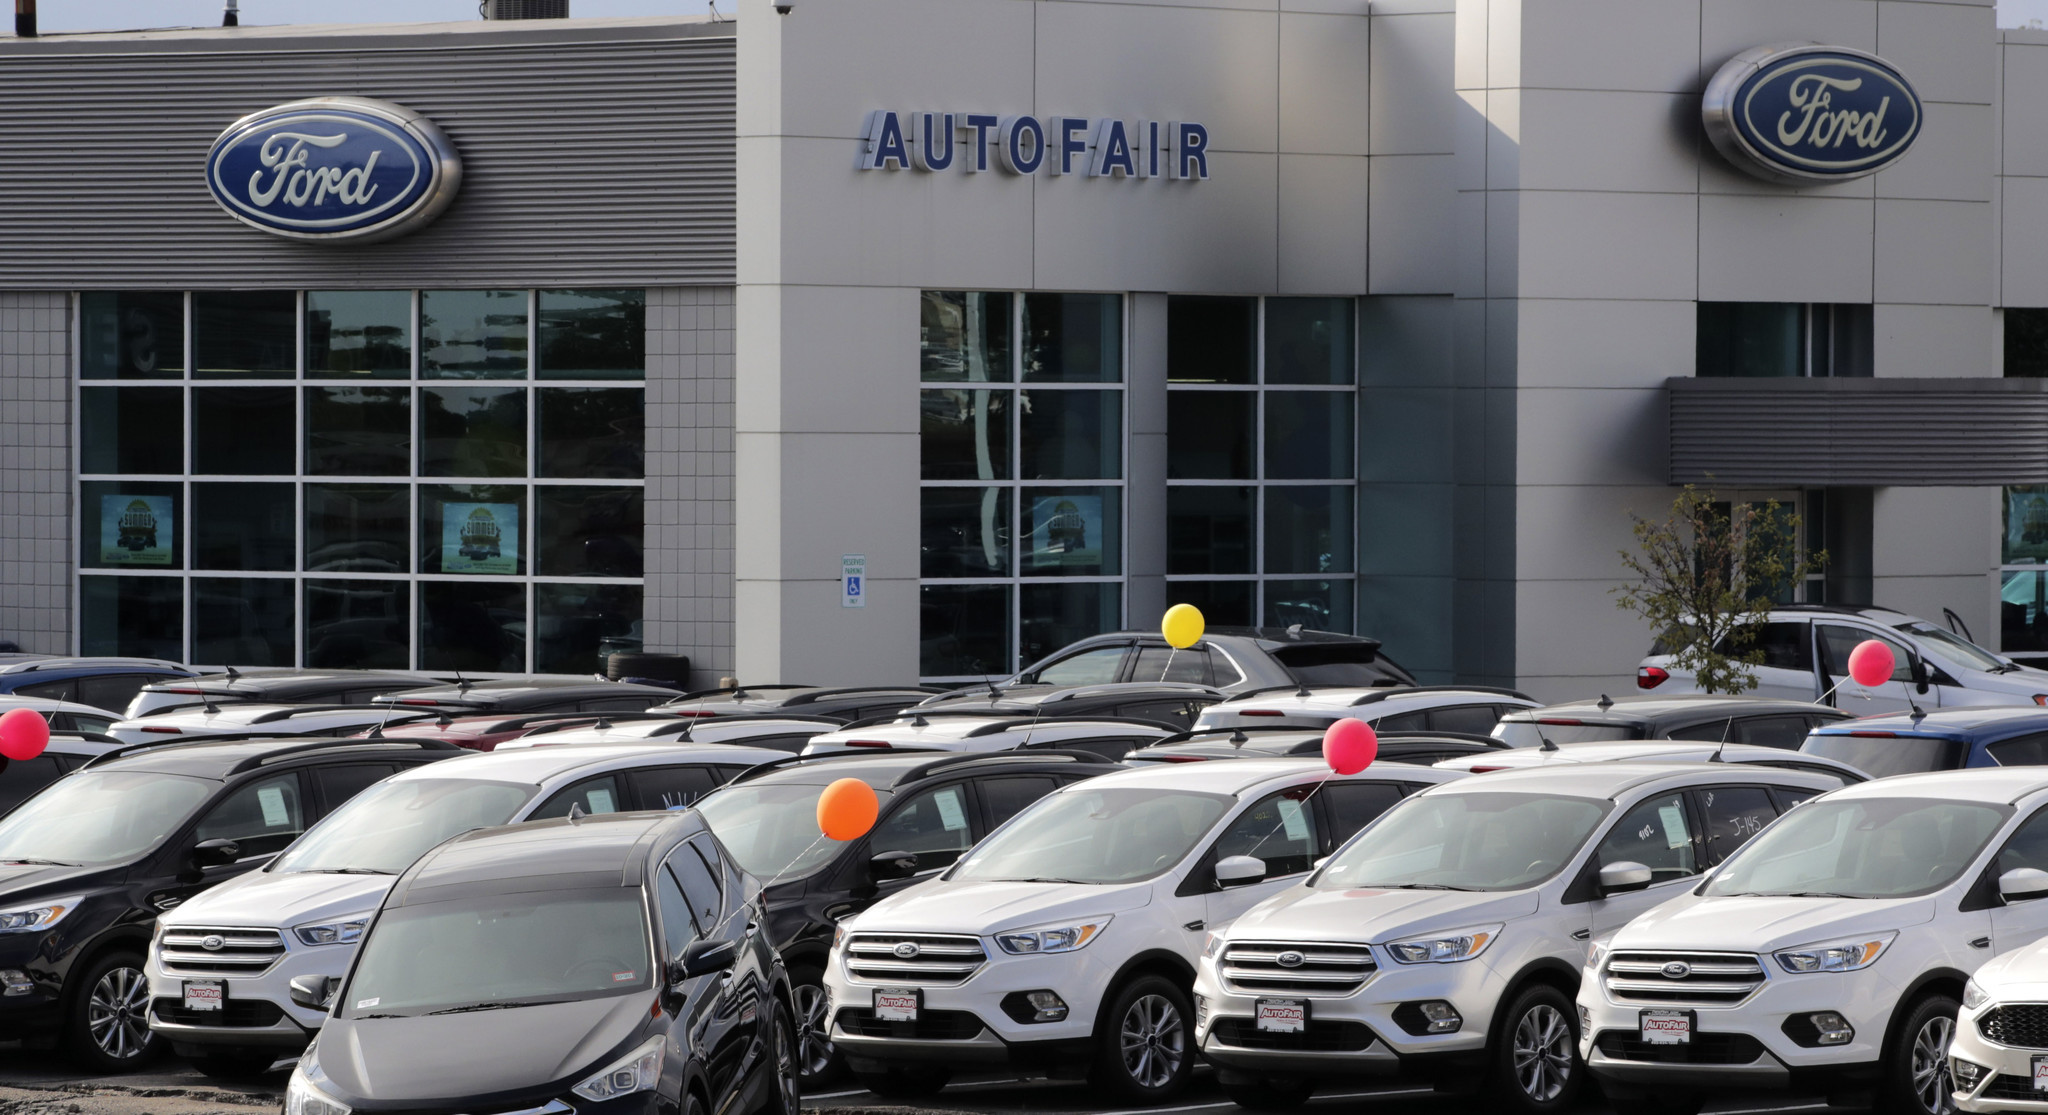 Ford recalls nearly 500,000 vehicles for risk of catching fire after crash